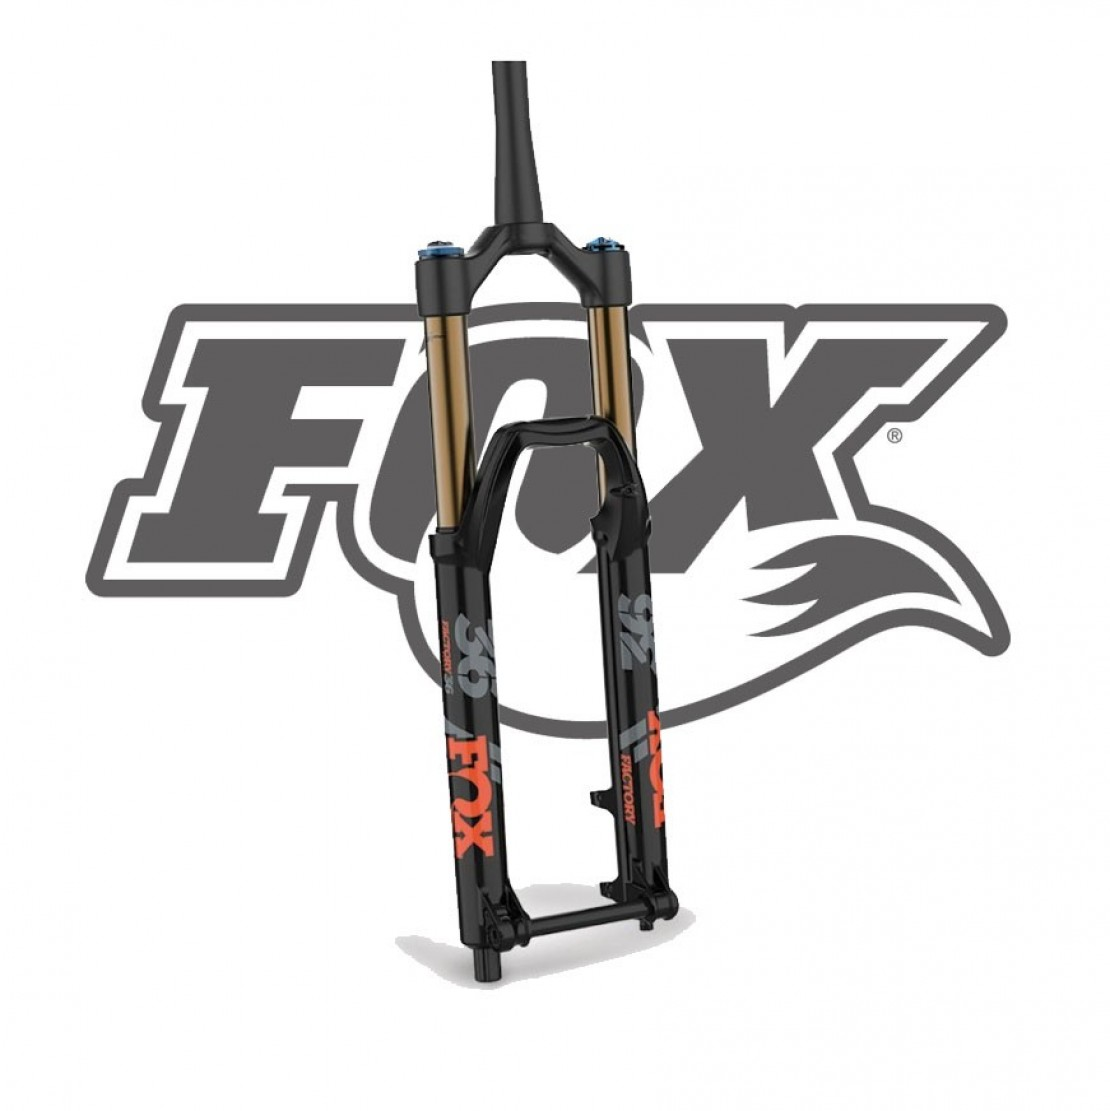 36 Float Factory 831 GRIP2 1.125 Fork 2019